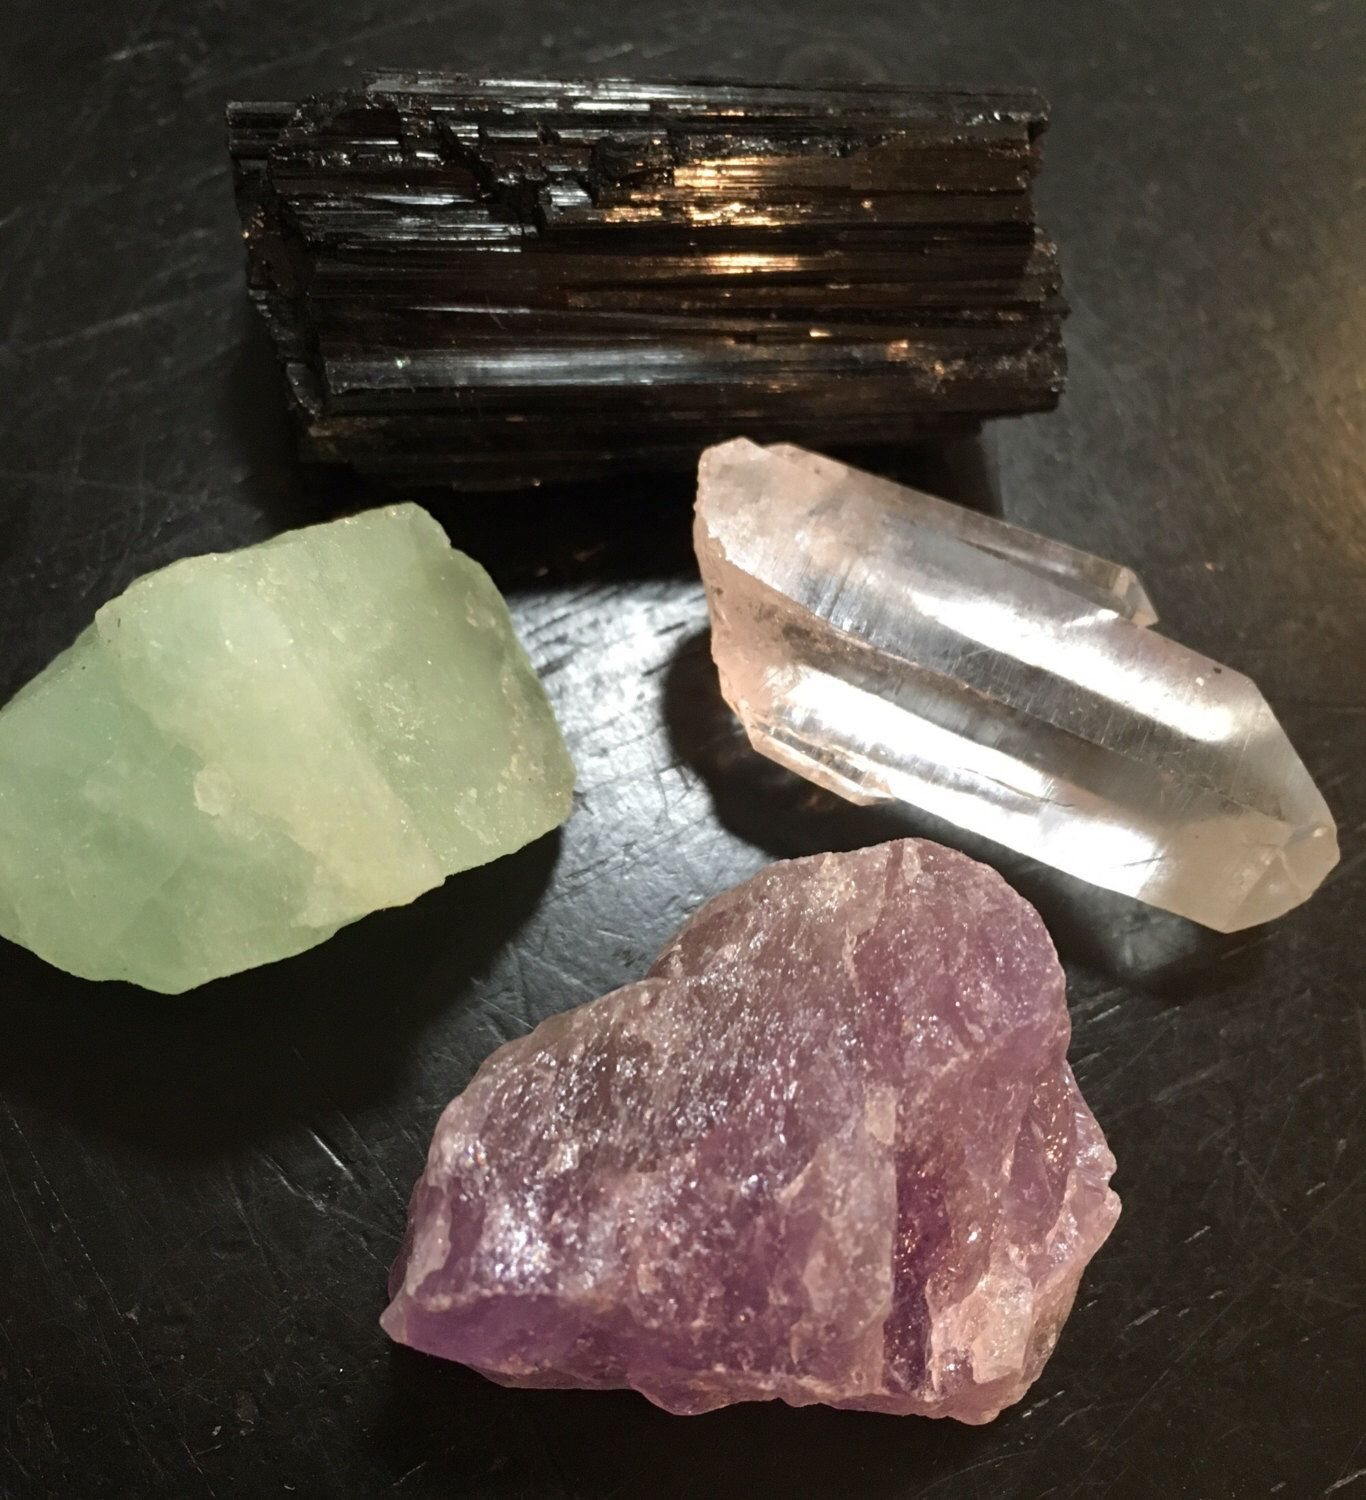 Anger and Stress relief gemstone set - Calming - healing crystals and stones - raw black tourmaline, raw amethyst, raw aquamarine, quartz by NewMoonBeginnings on Etsy https://www.etsy.com/listing/399570041/anger-and-stress-relief-gemstone-set